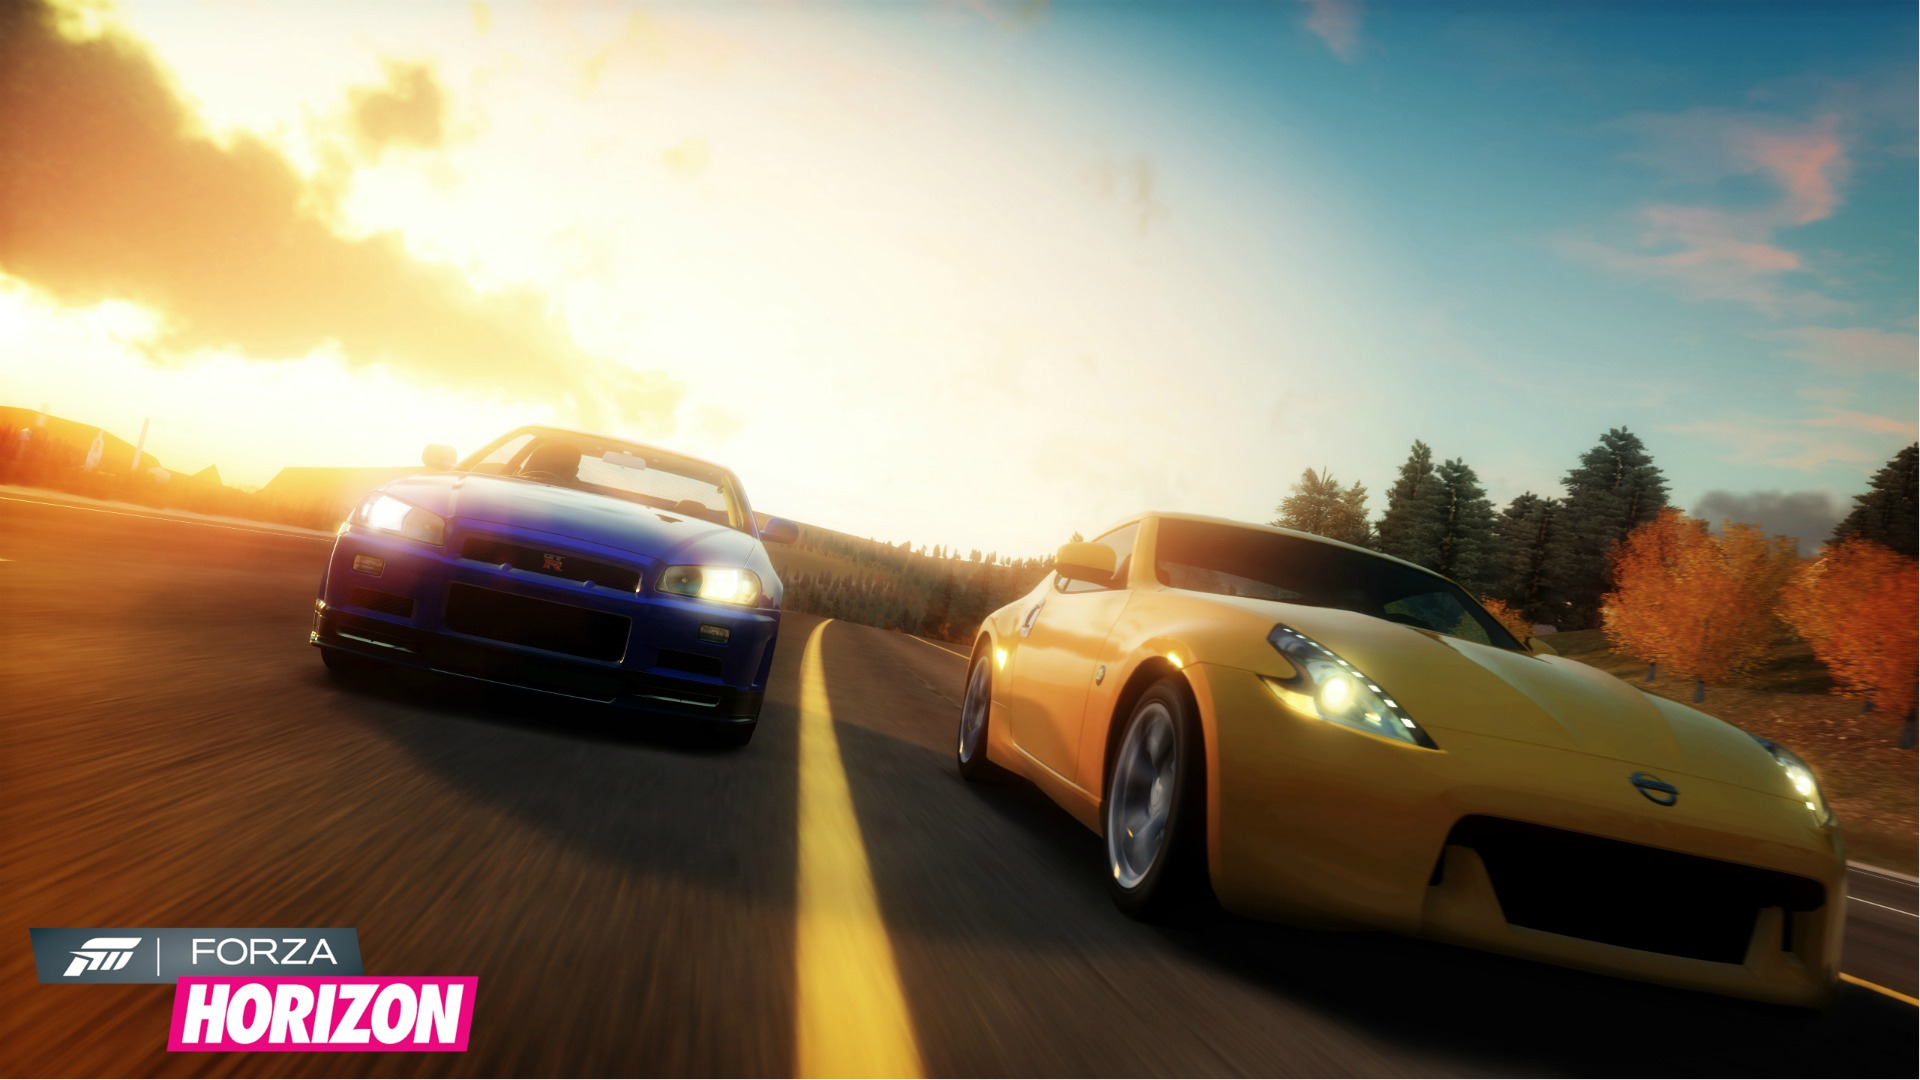 Forza Horizon wallpaper 1